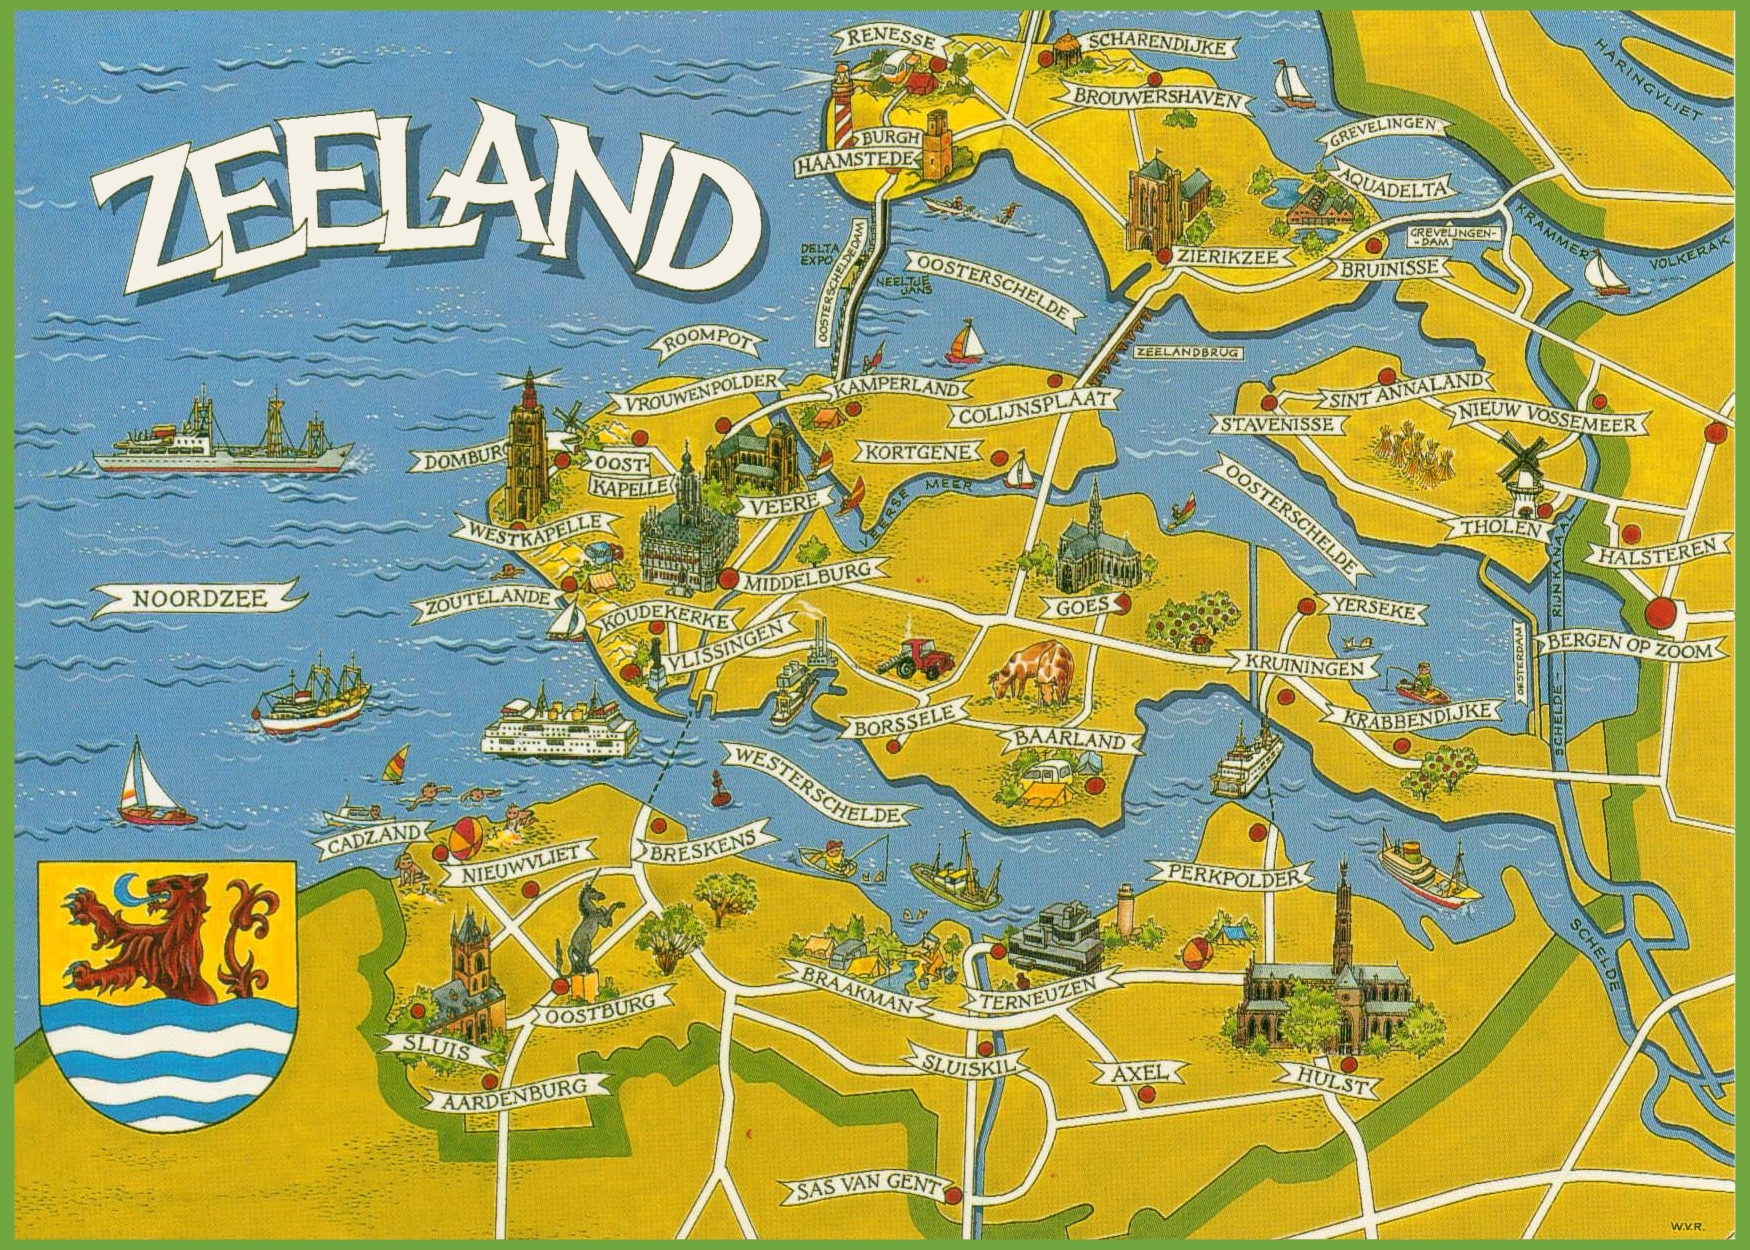 Zeeland tourist map